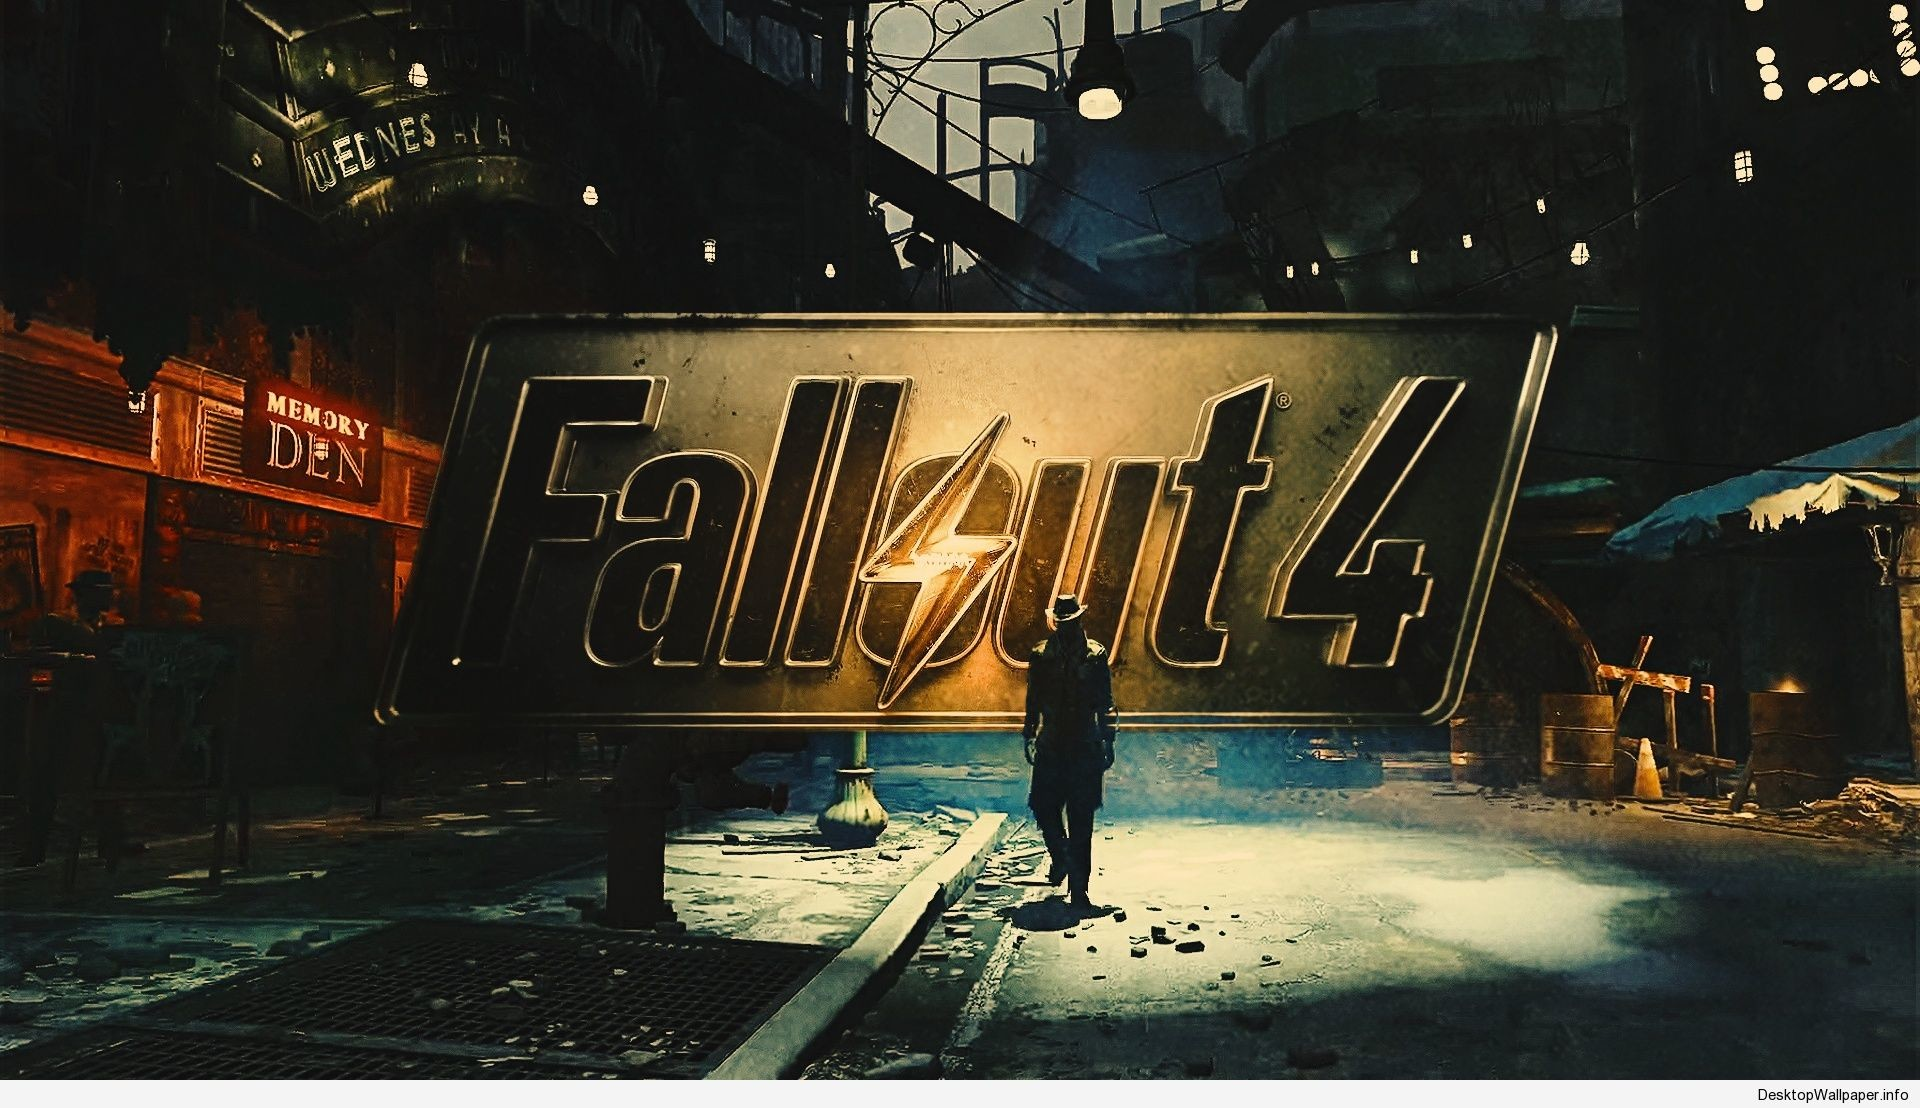 mission impossible wallpaper, fallout 4 wallpaper